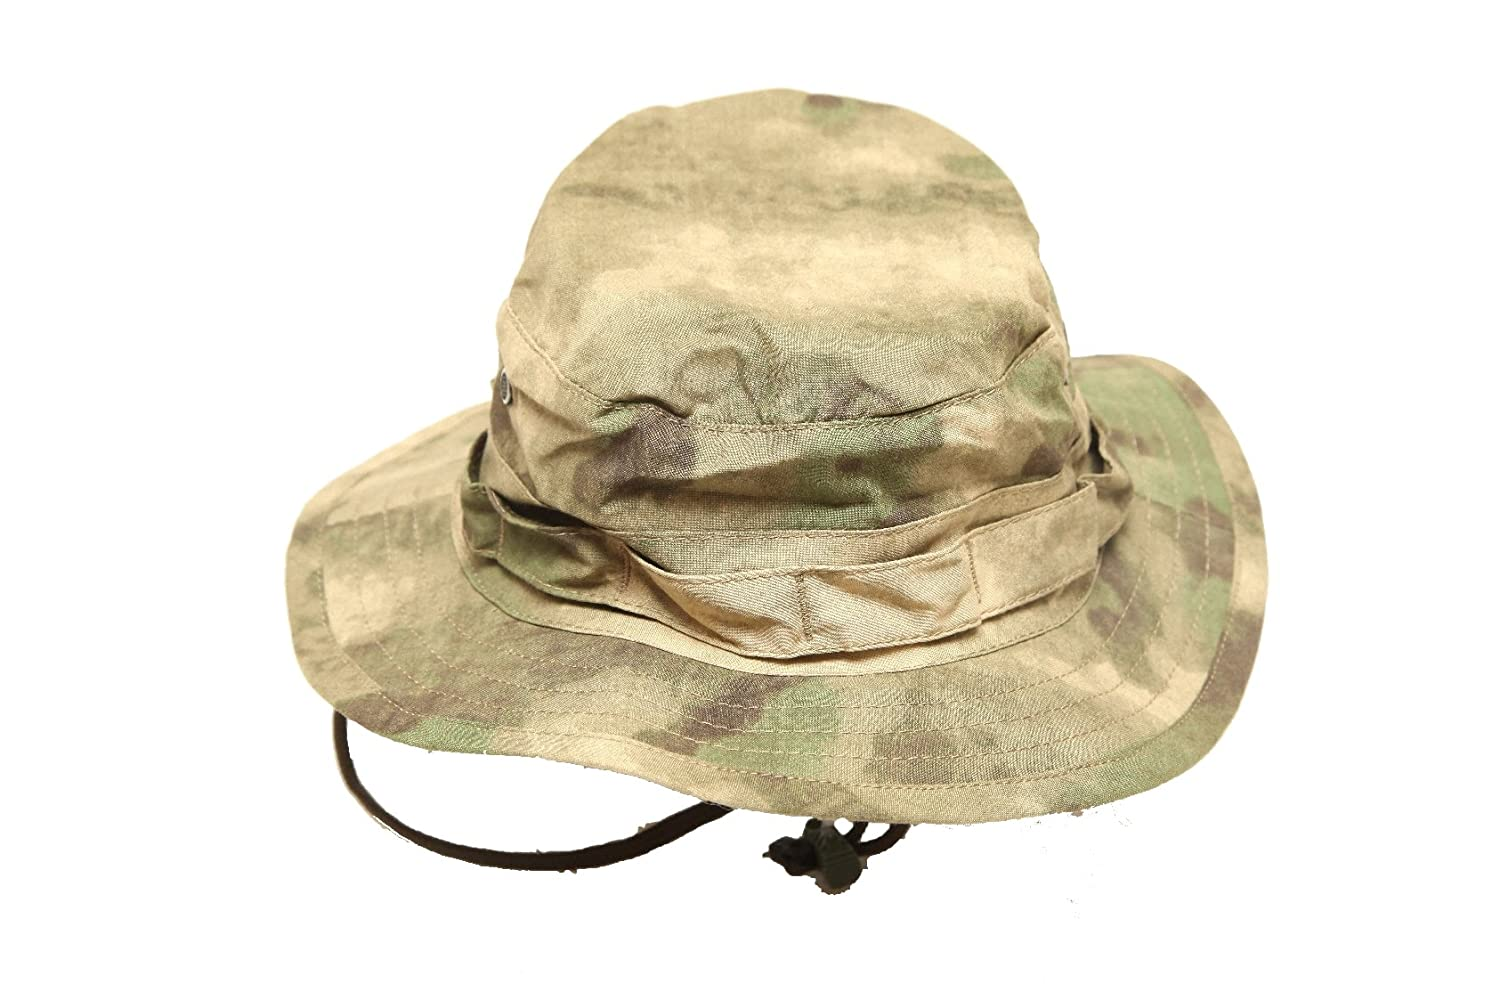 Russian army military spetsnaz sposn sso boonie hat a tacs at amazon mens  clothing store jpg 9397fb3fe1d9